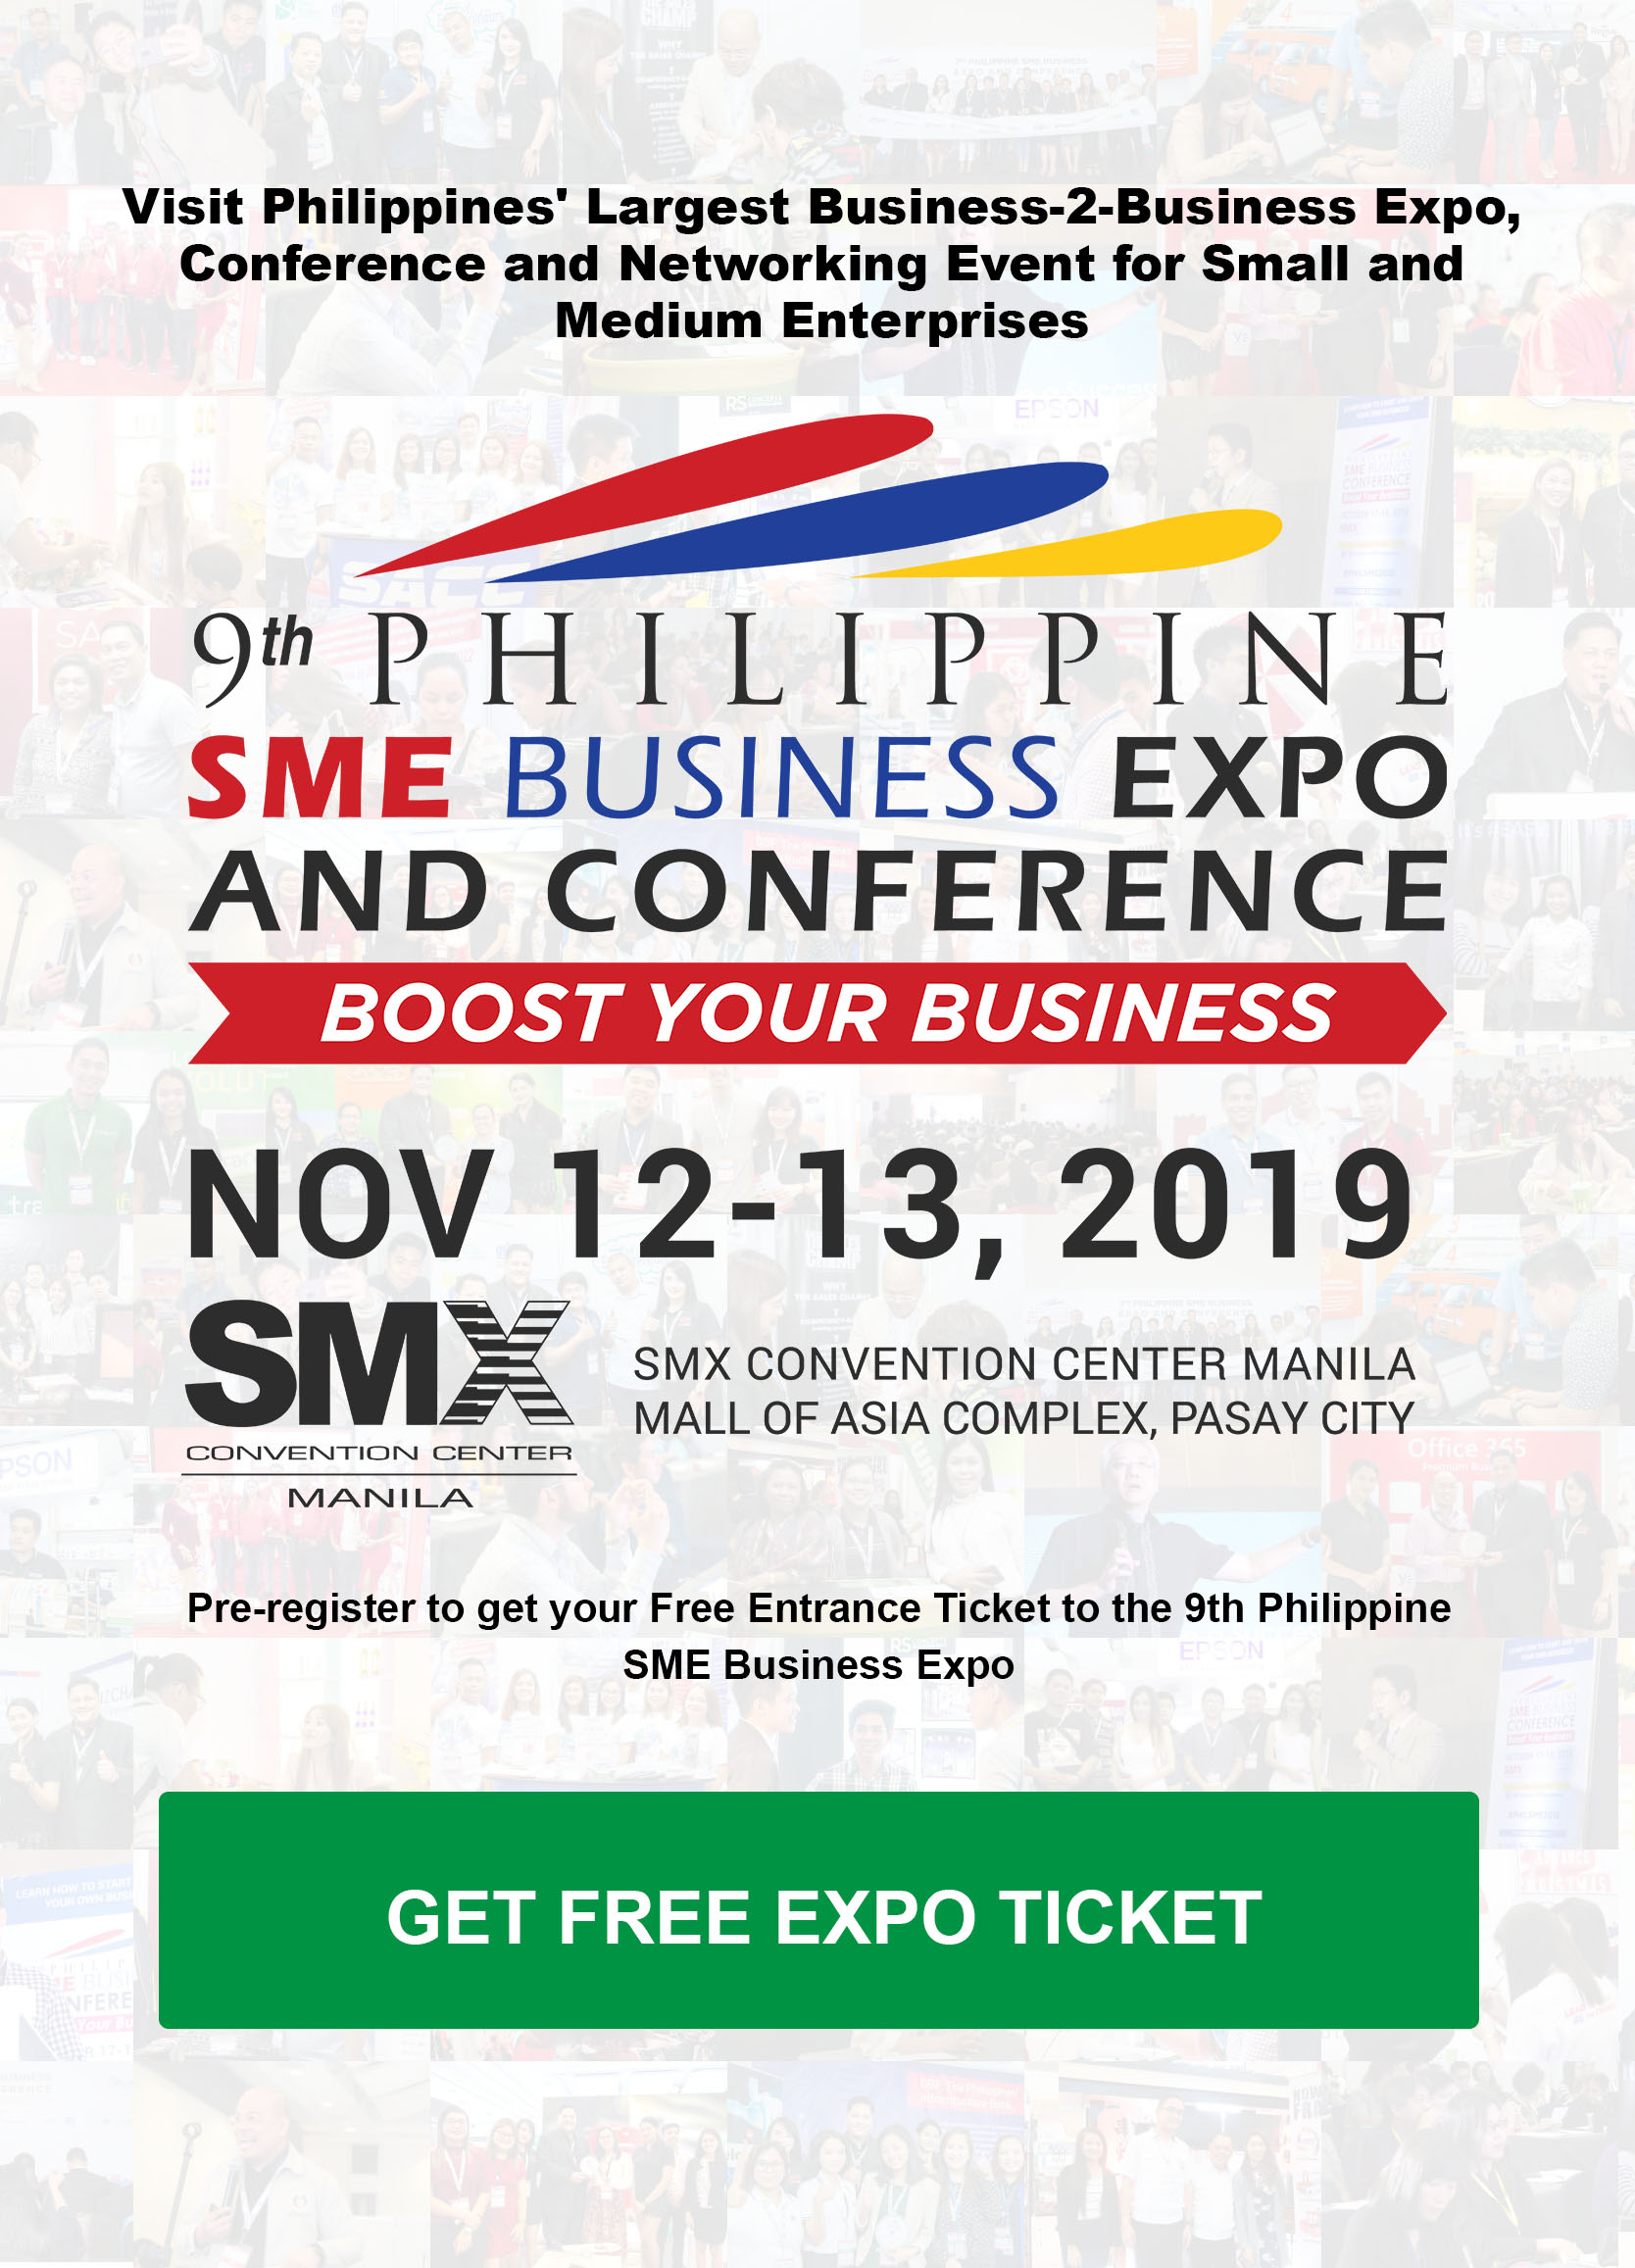 9th Philippine SME Business Expo & Conference - Boost Your Business